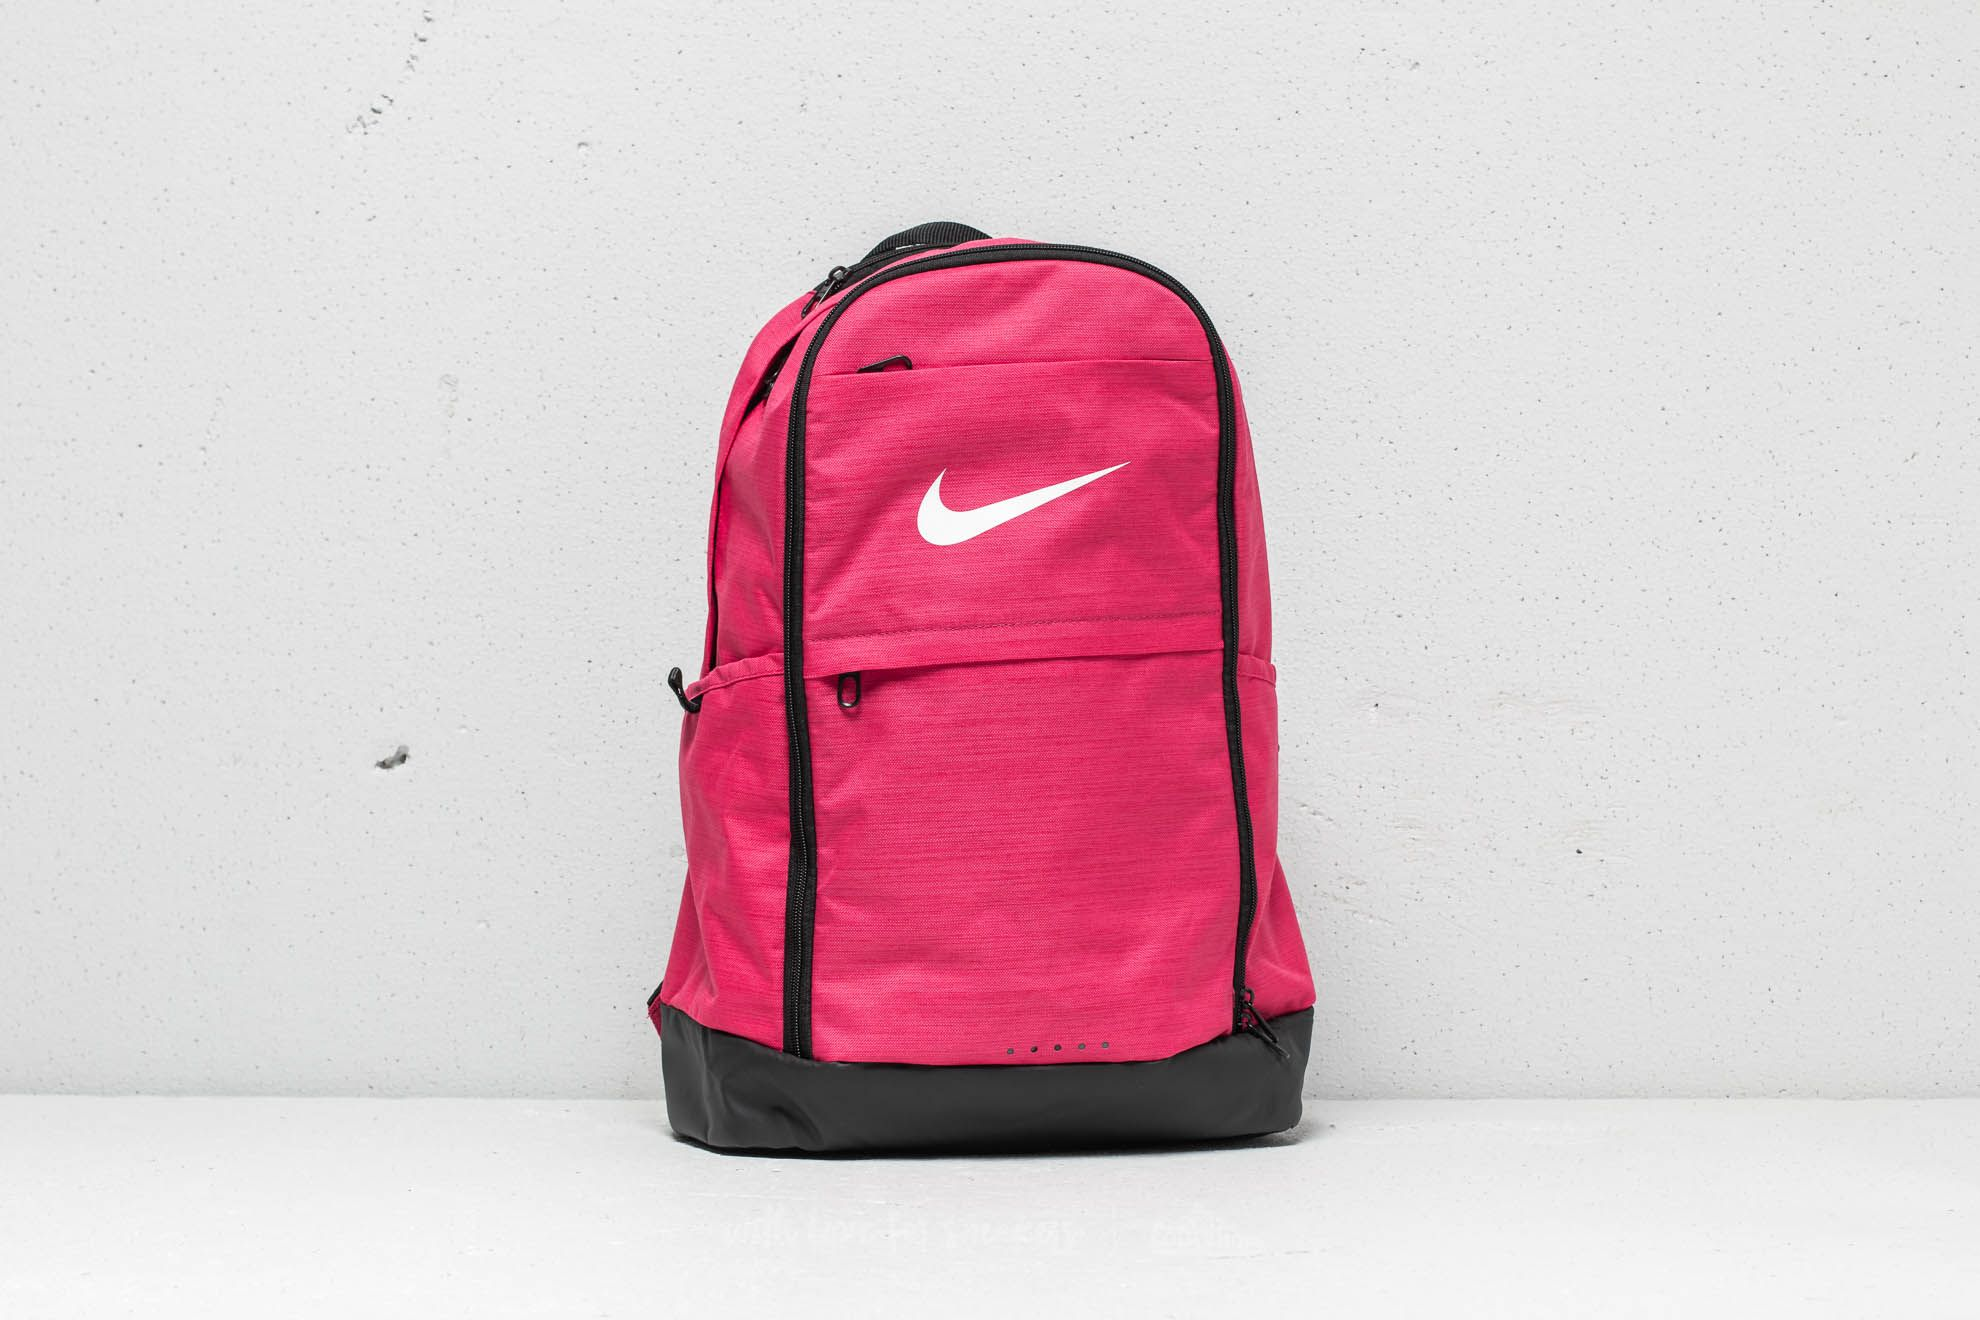 Nike Brasilia XL Backpack Pink  Black  White  4699372fa04c8